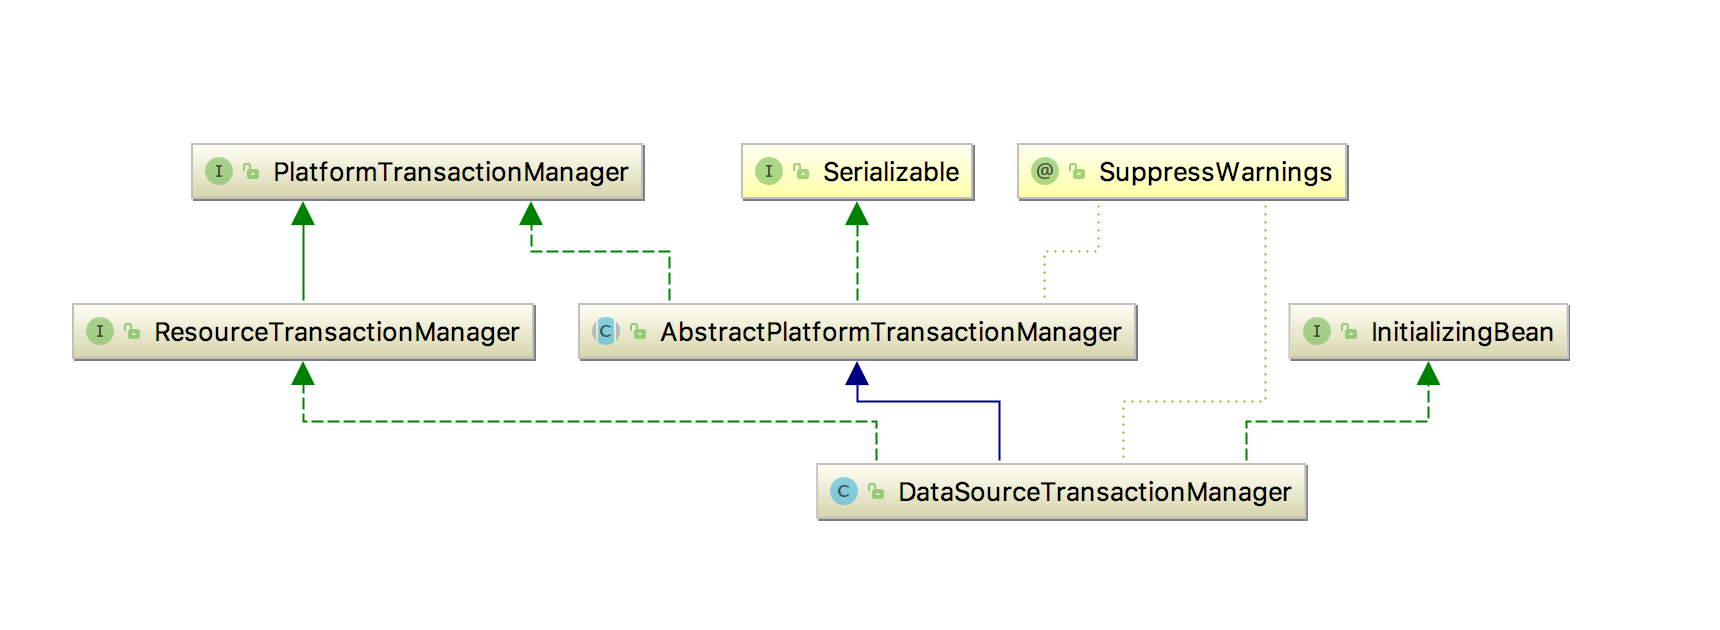 DataSourceTransactionManager